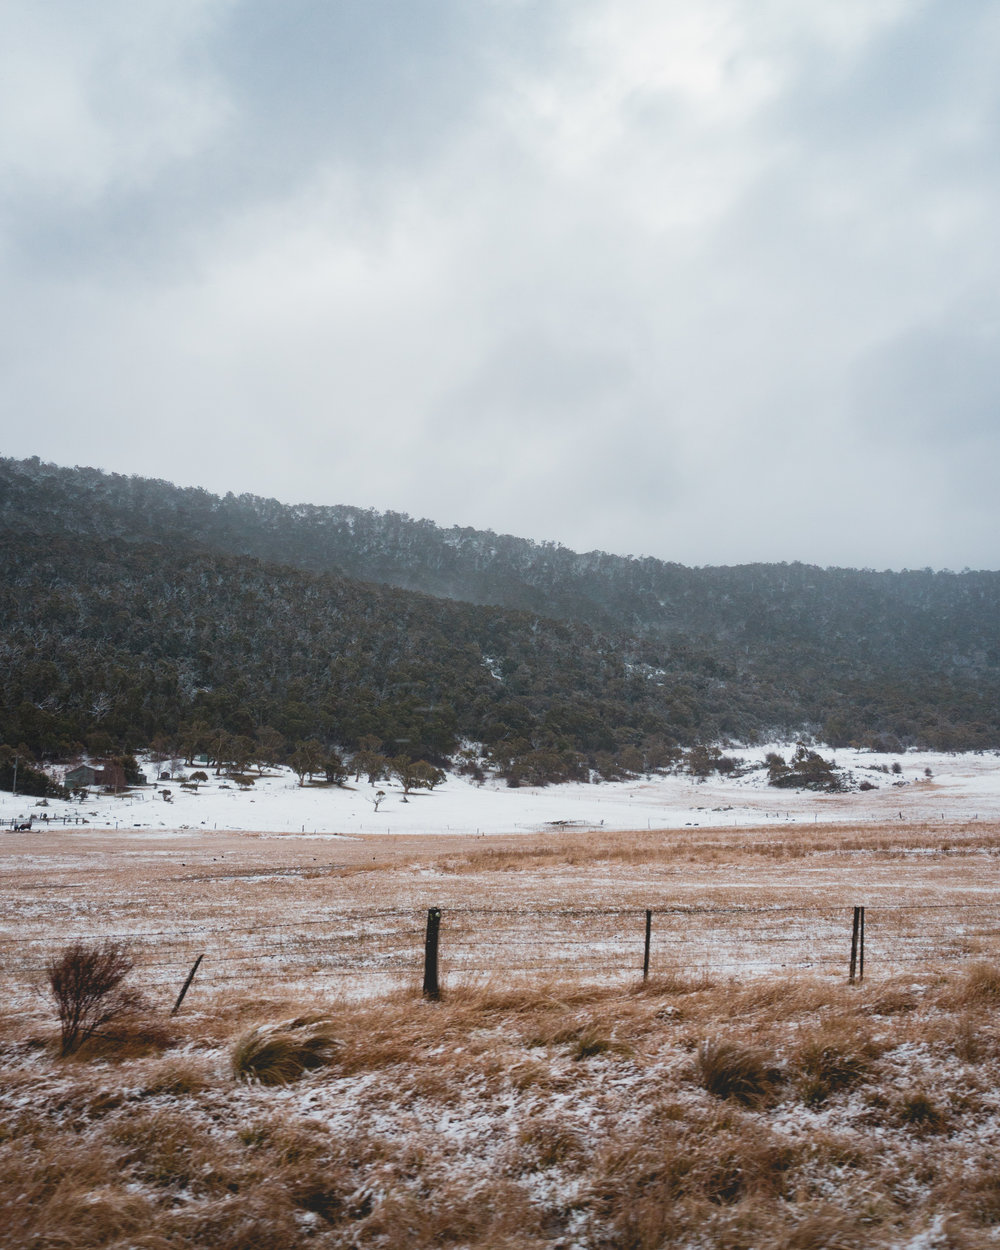 Still can't believe snow exists in Australia.